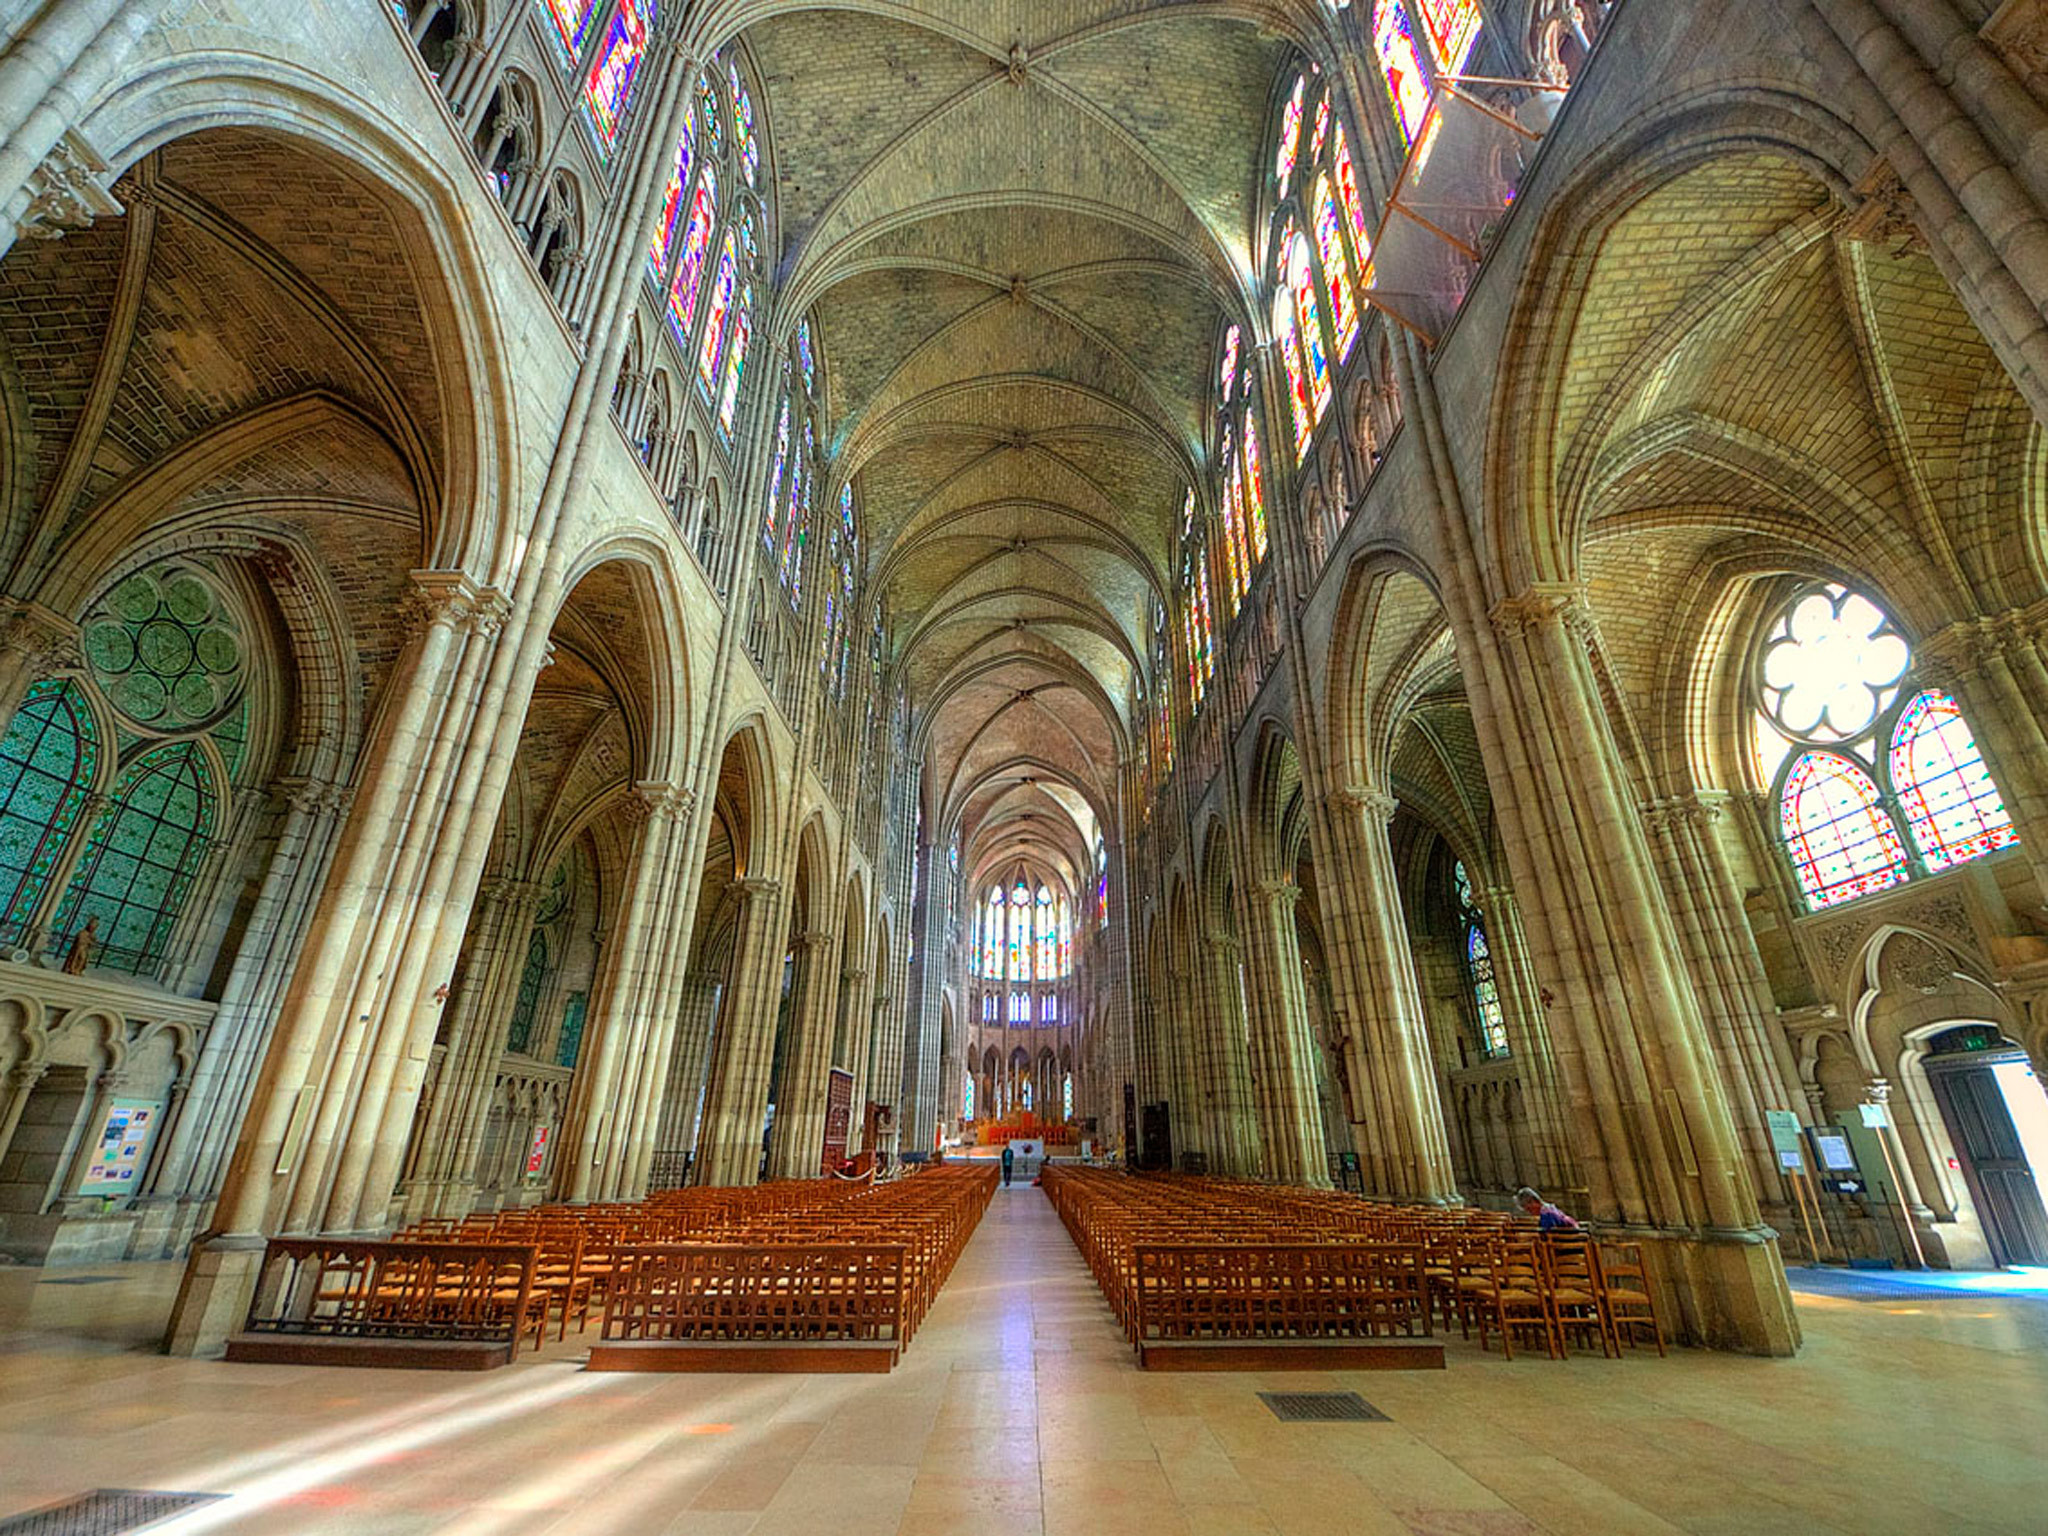 Inside the stunning Basilica of Saint-Denis